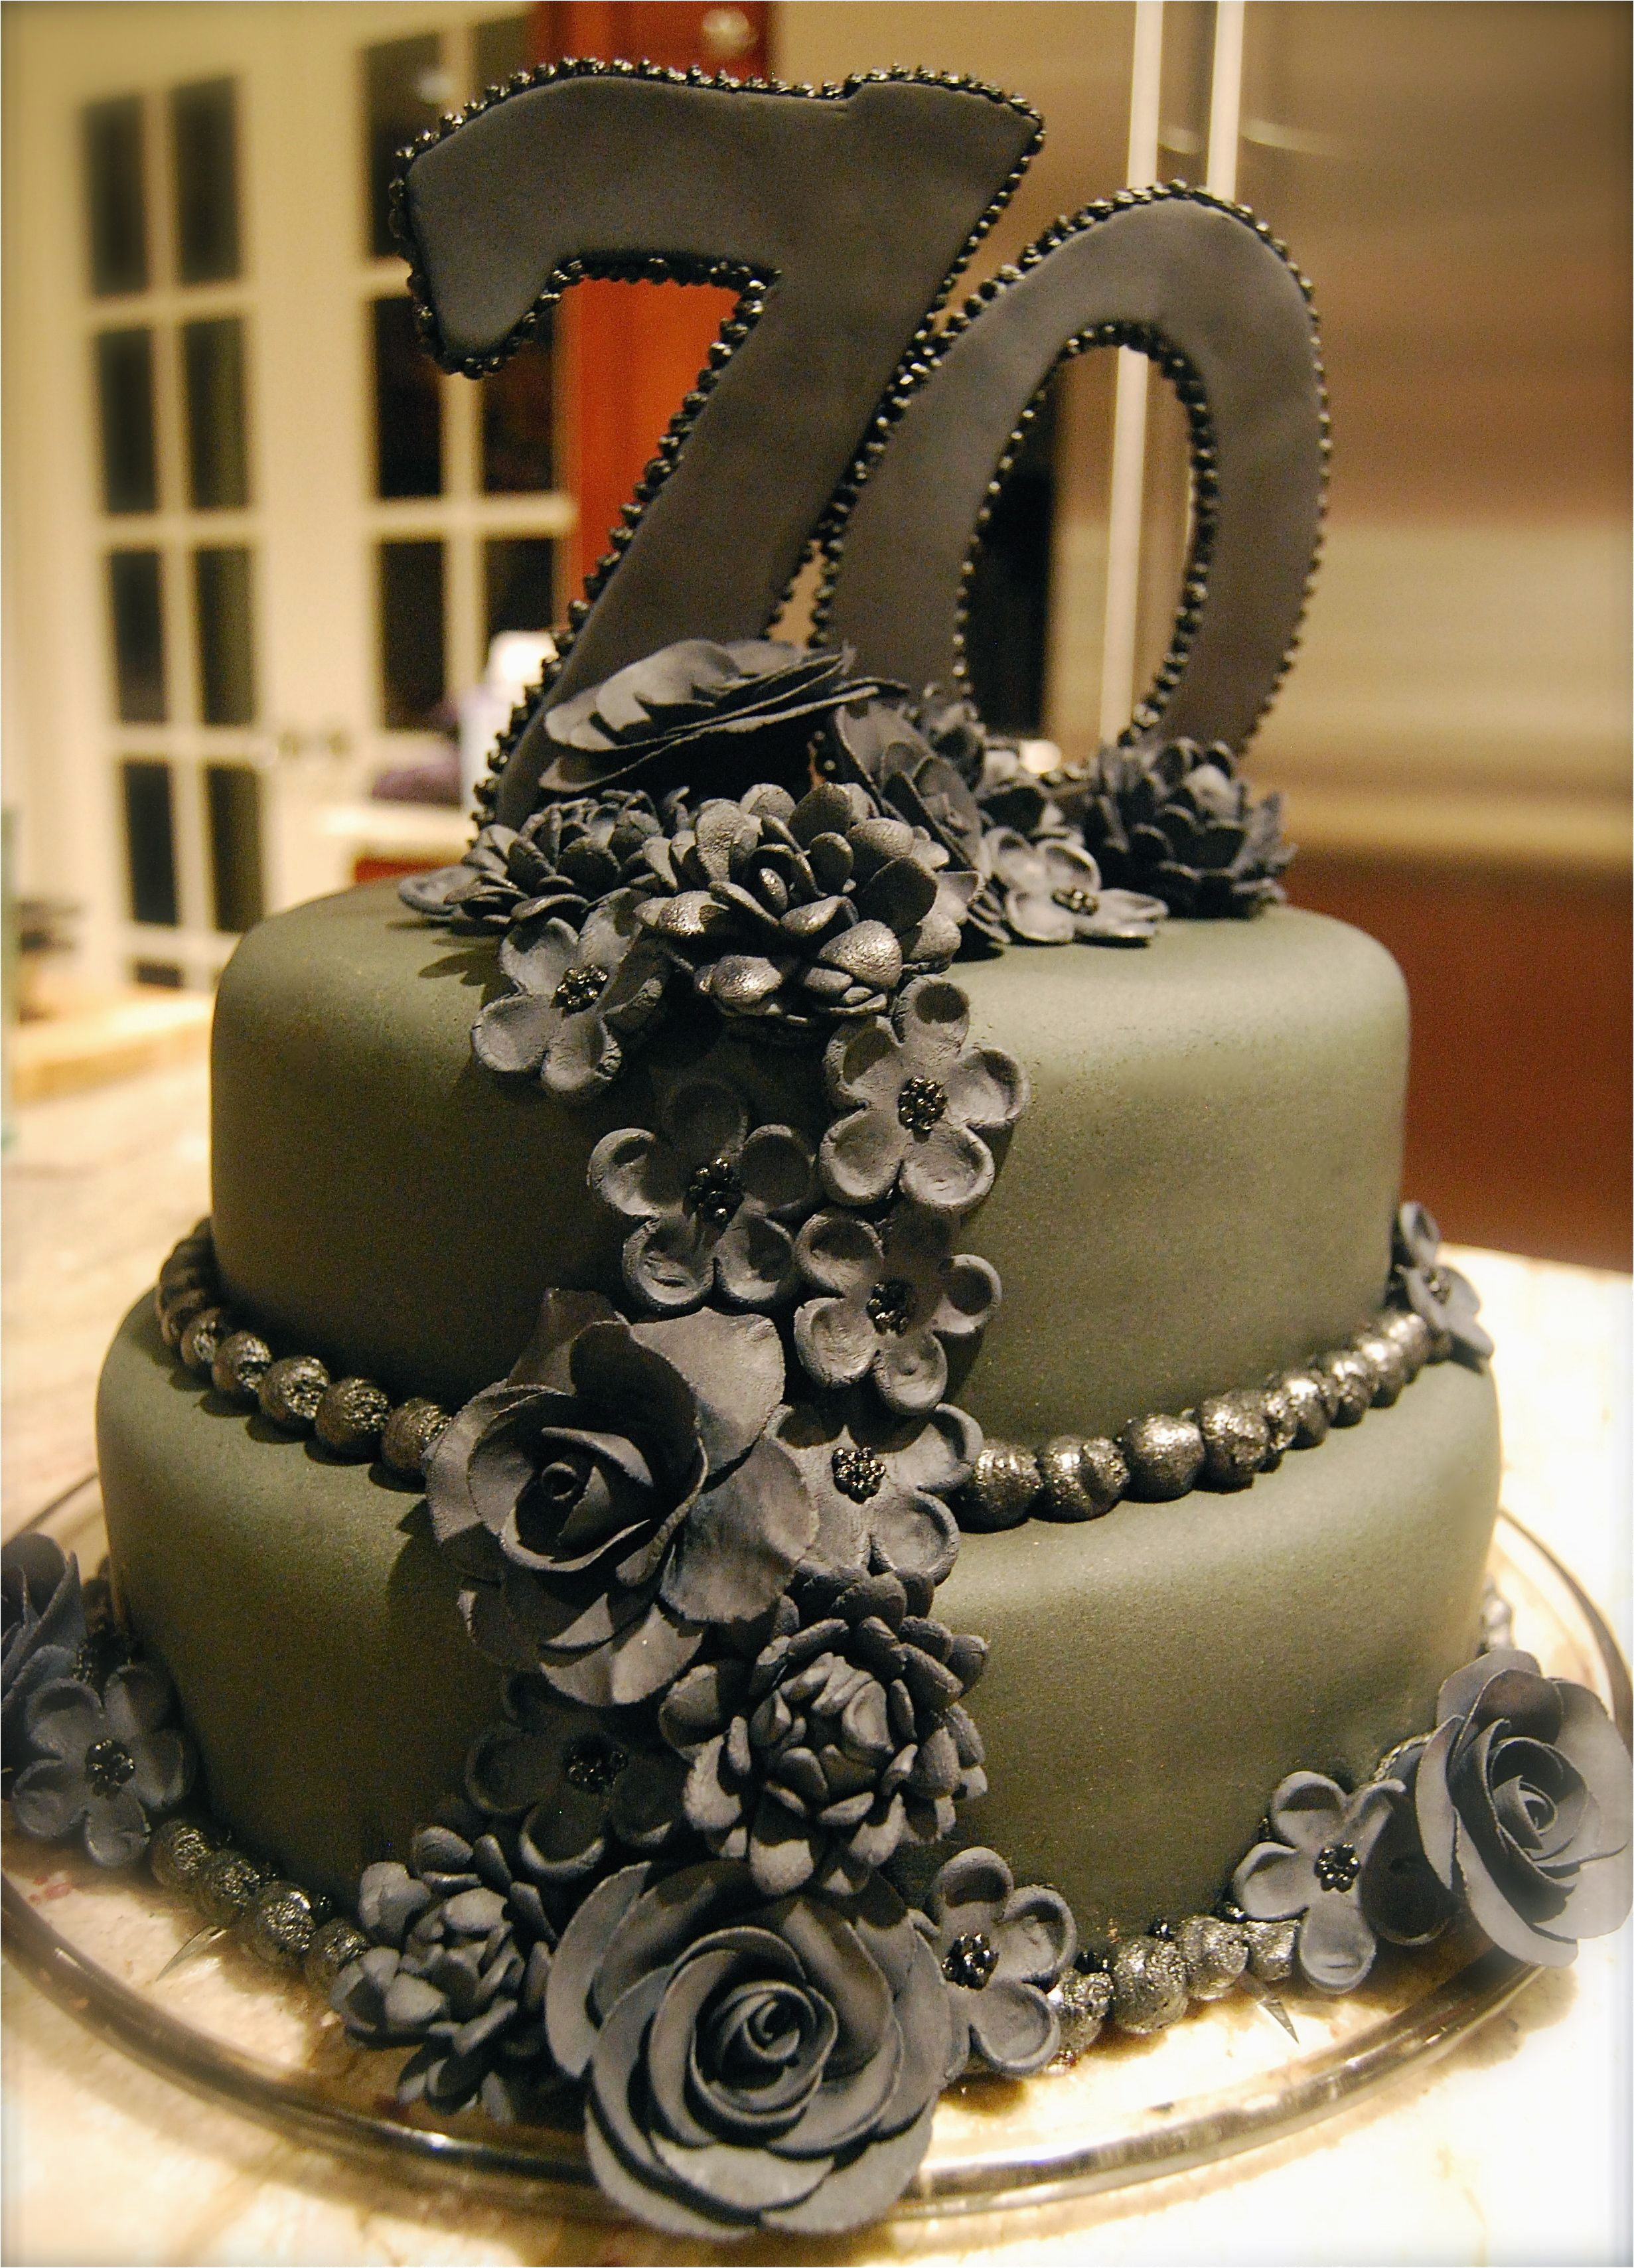 70th Birthday Cake Decorations Cakes Ideas And Designs